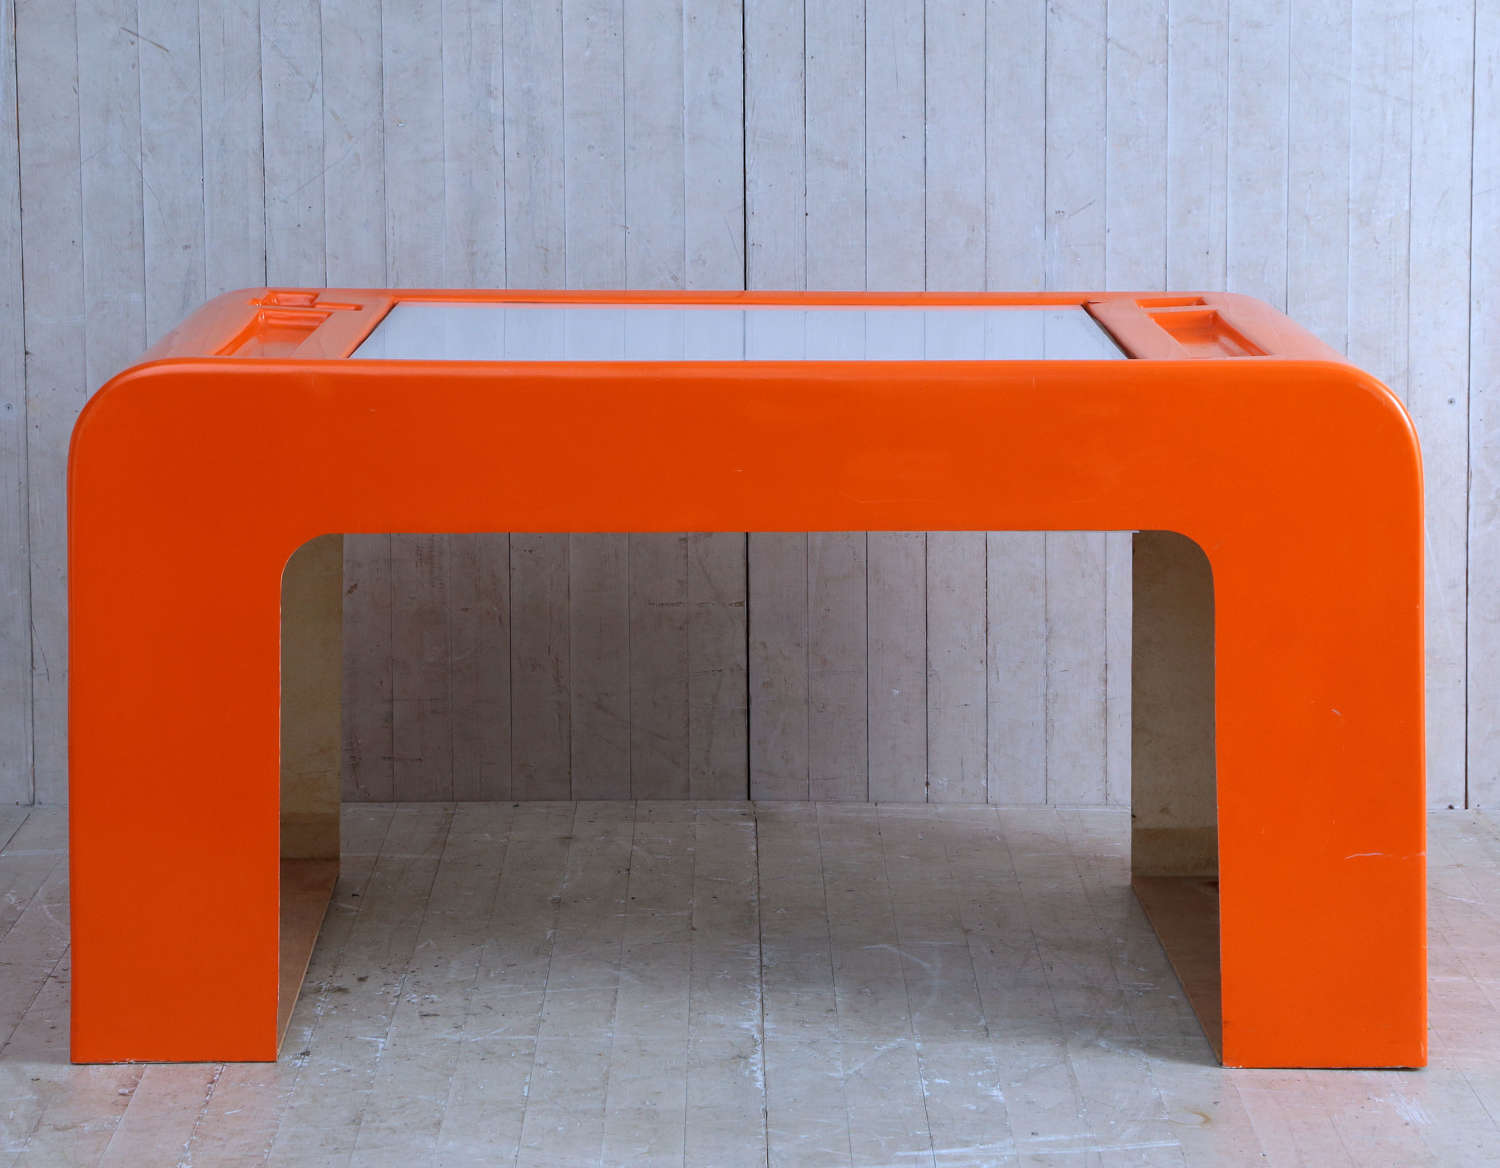 20th century French Lightbox Table constructed in Fibreglass